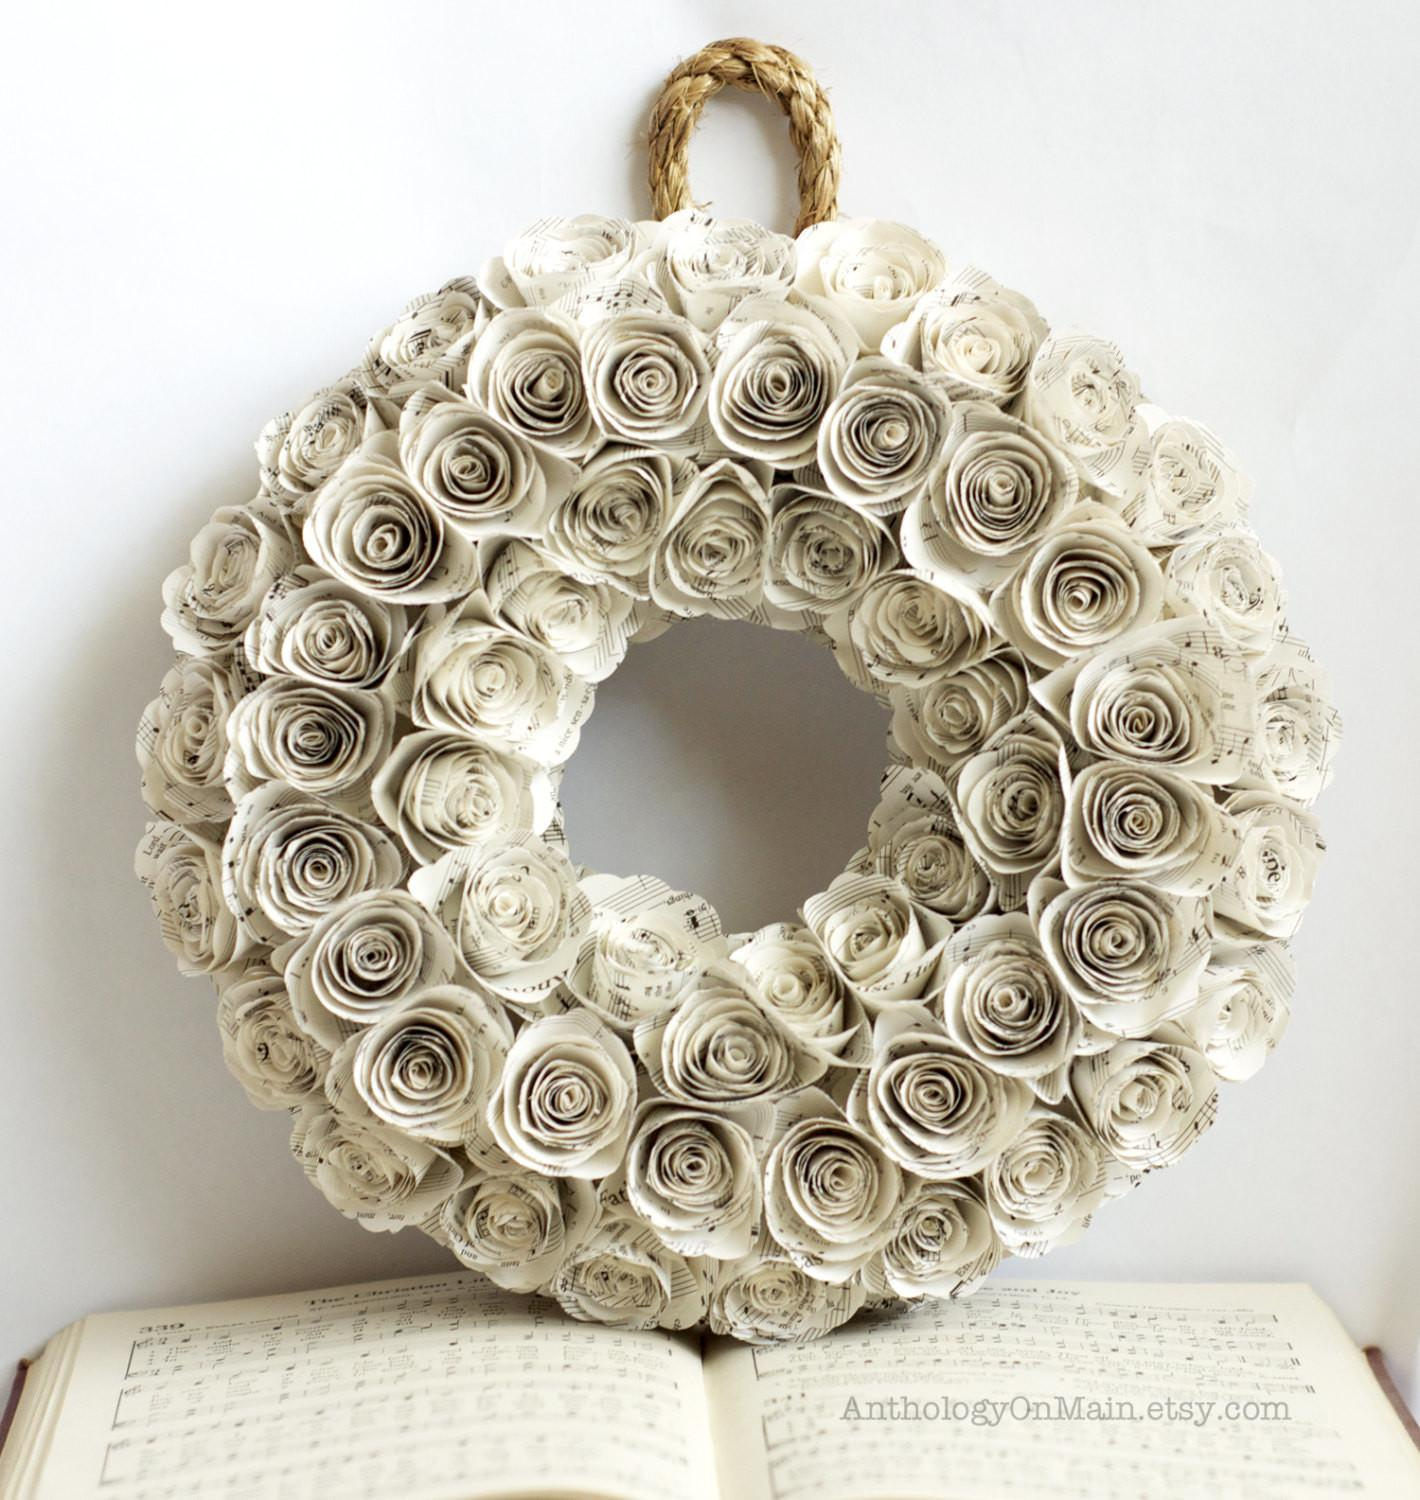 Church Hymnal Wreath Inch Upcycled Anthologyonmain